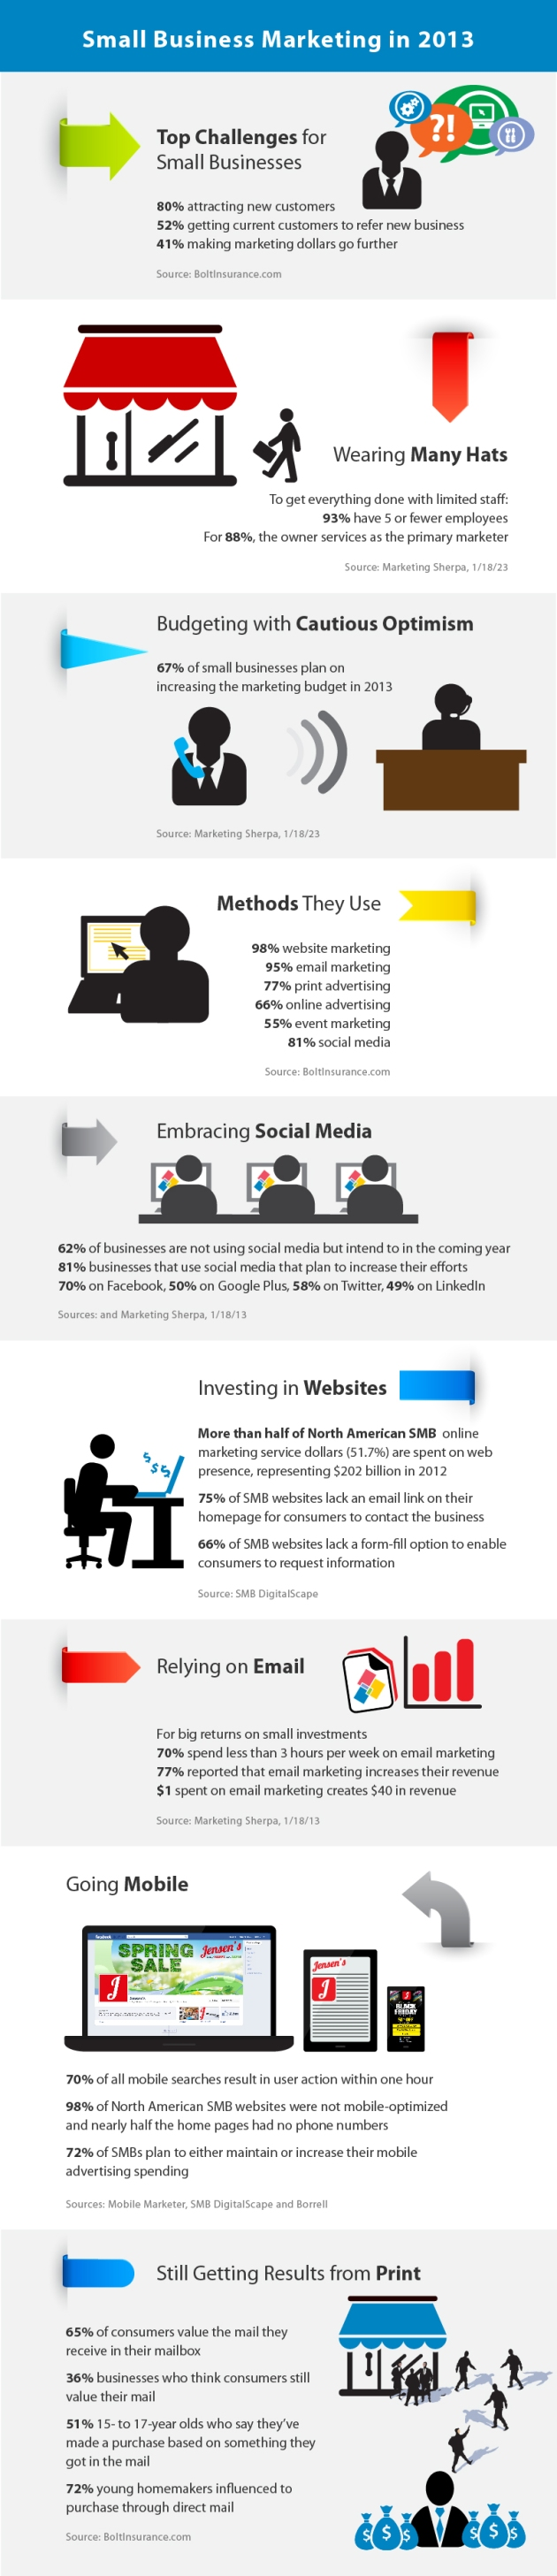 Small Business Marketing in 2013